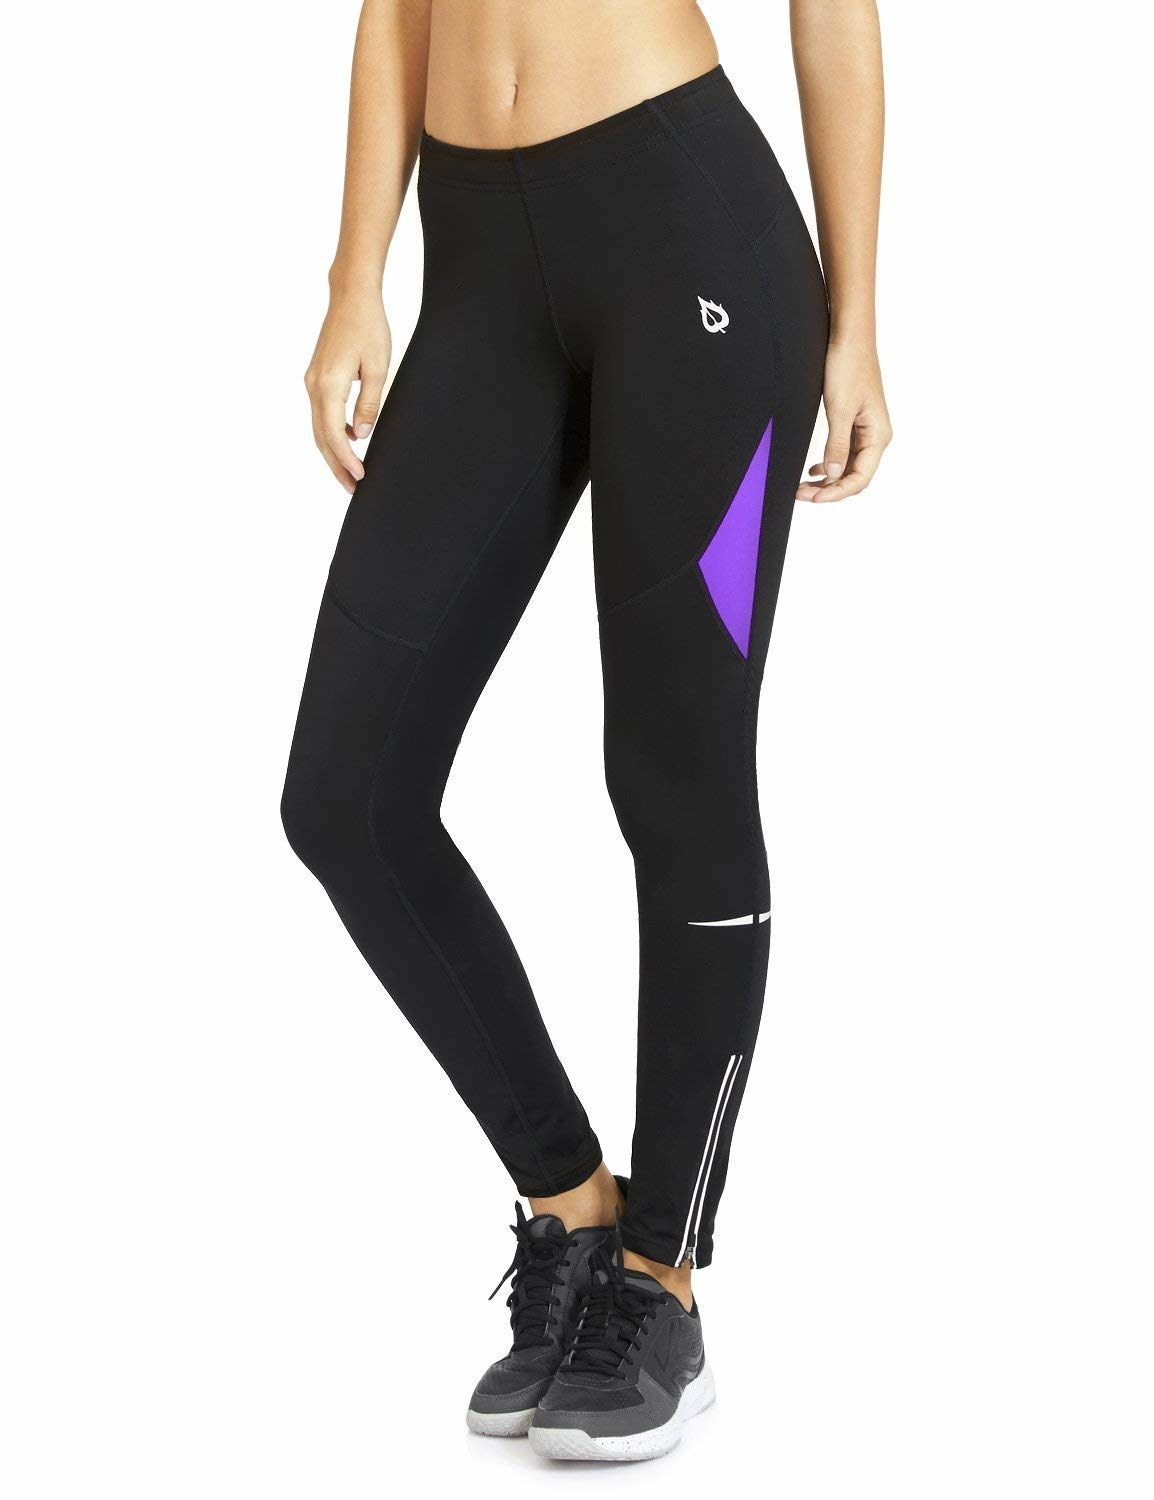 e610239eb 28 Stylish Pairs Of Tights And Leggings To Add To Your Winter Wardrobe